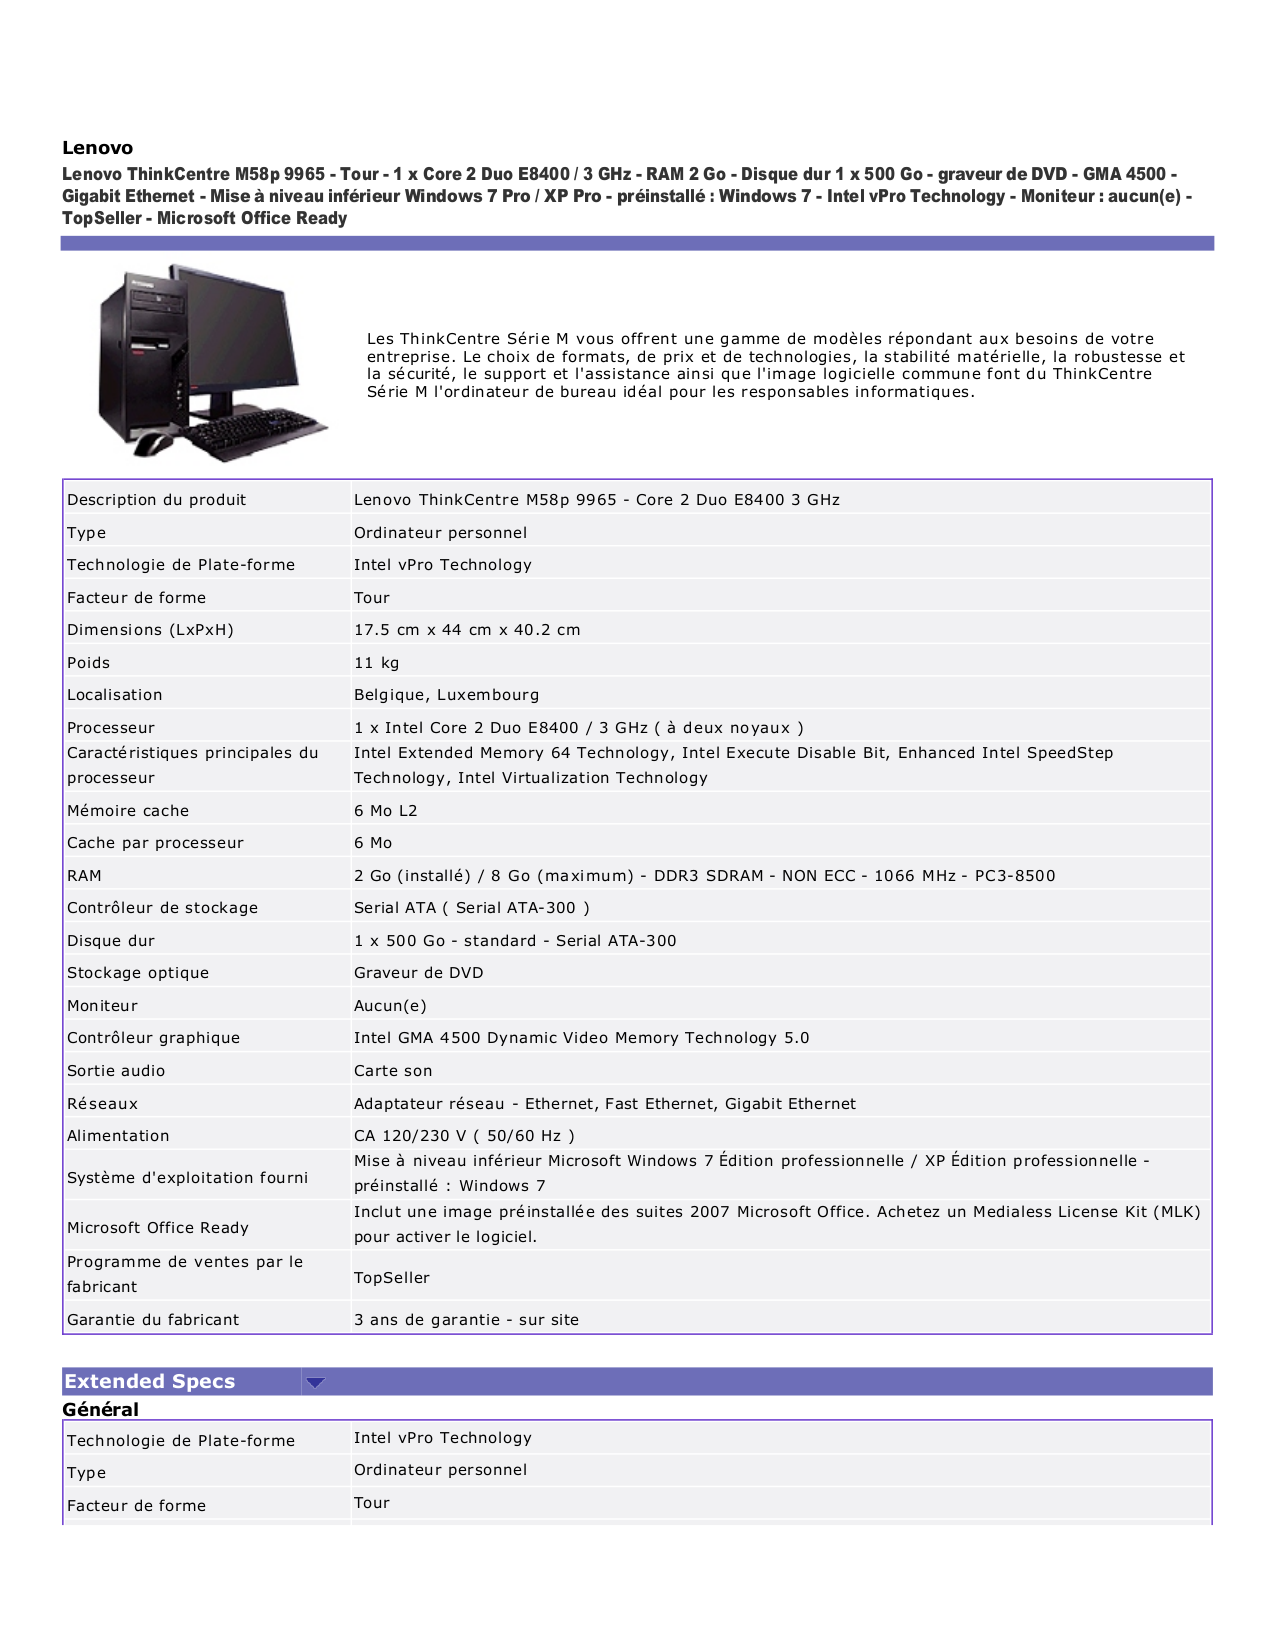 pdf for Lenovo Desktop ThinkCentre M58p 9965 manual